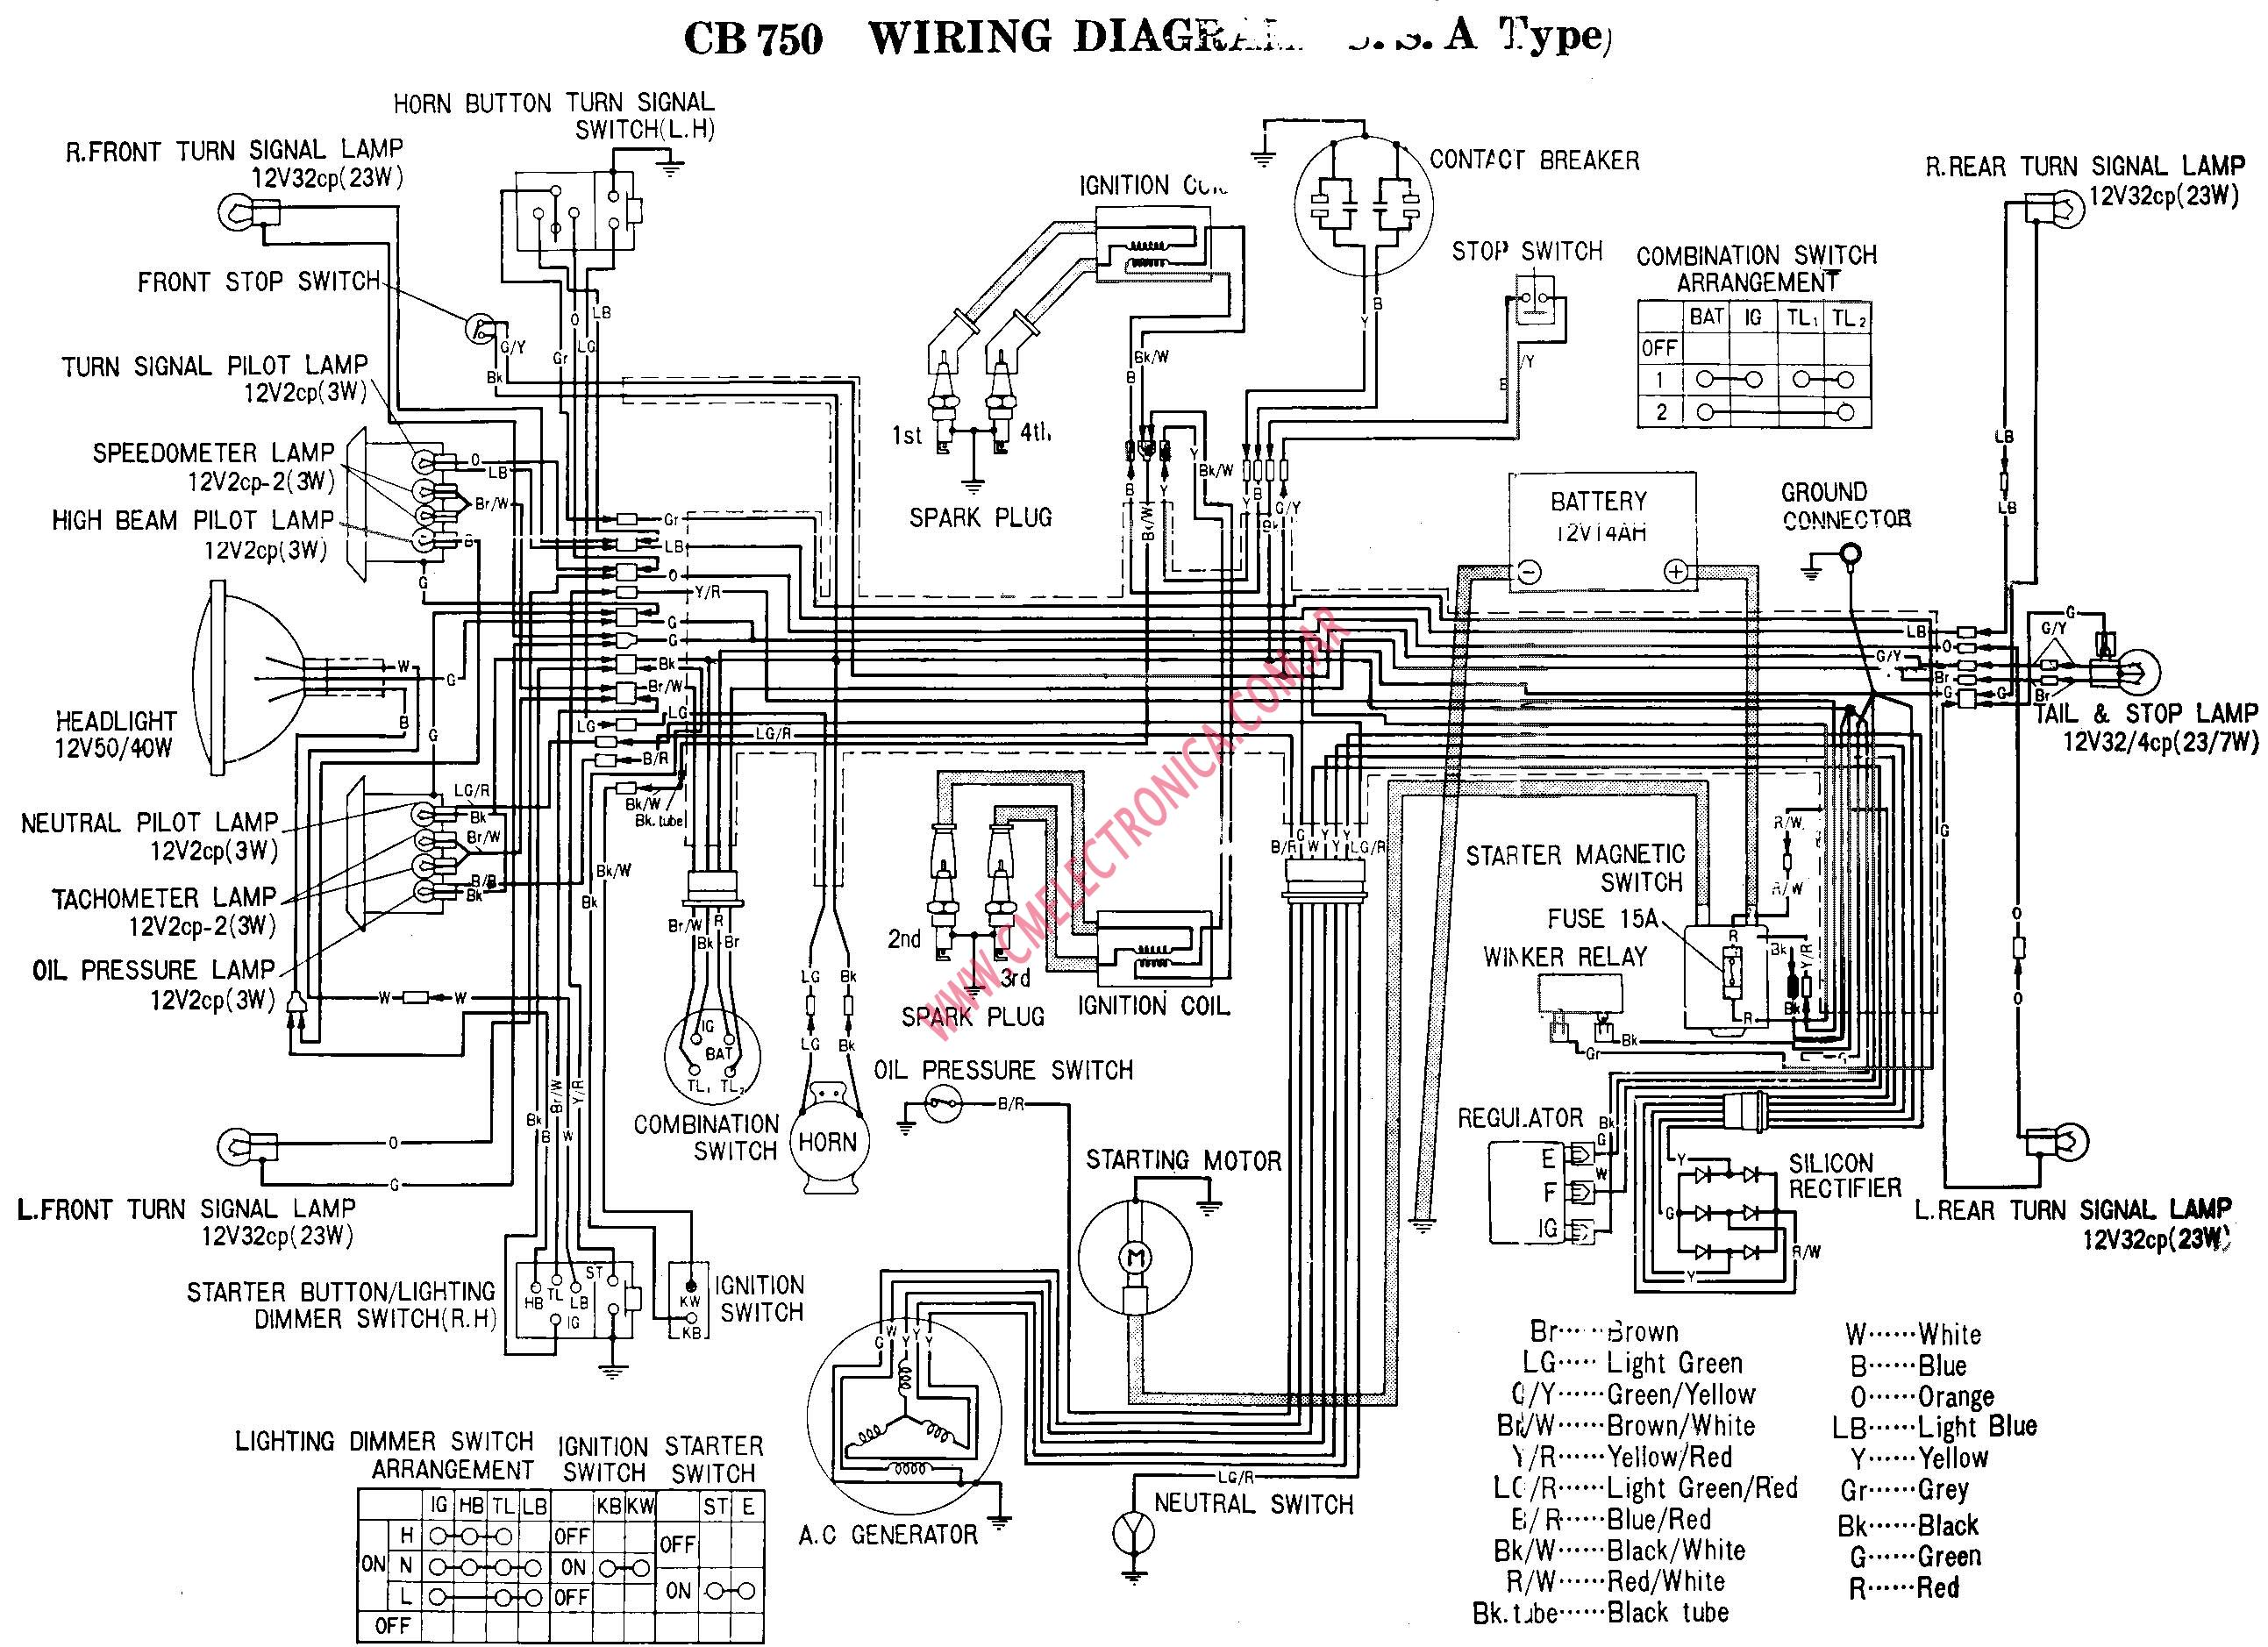 Subaru Wiring Diagram